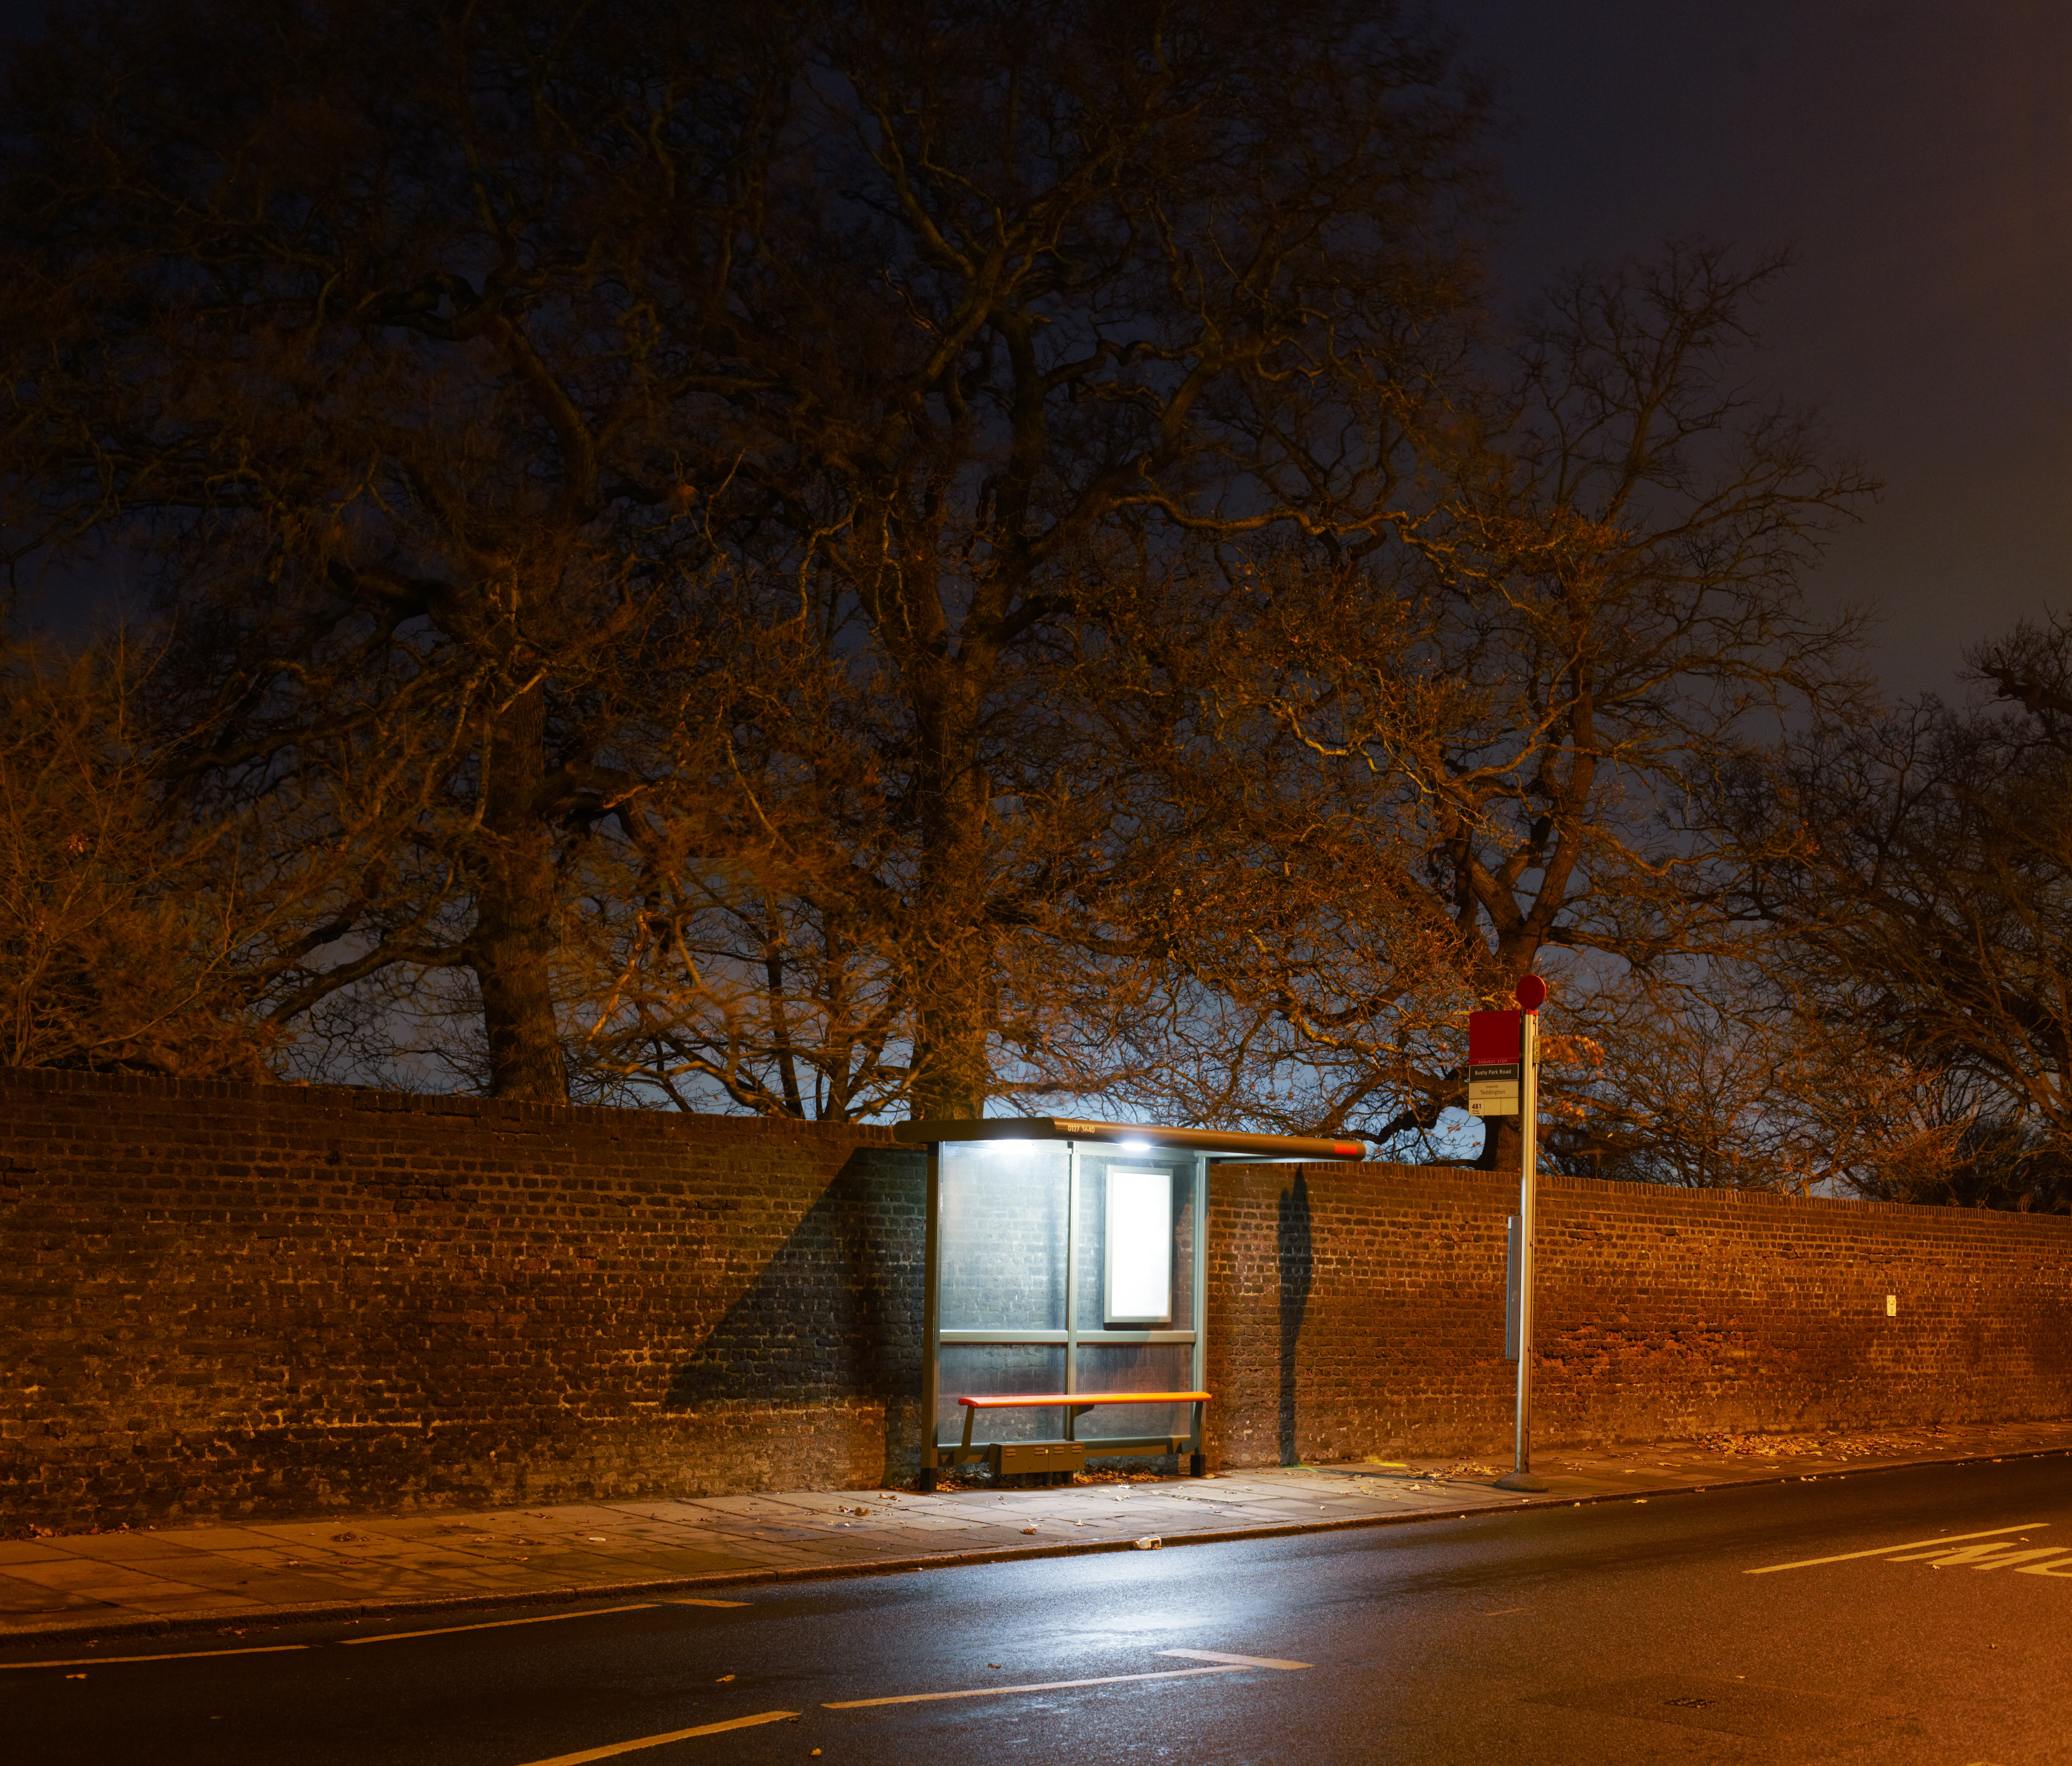 Bus stop at night in London